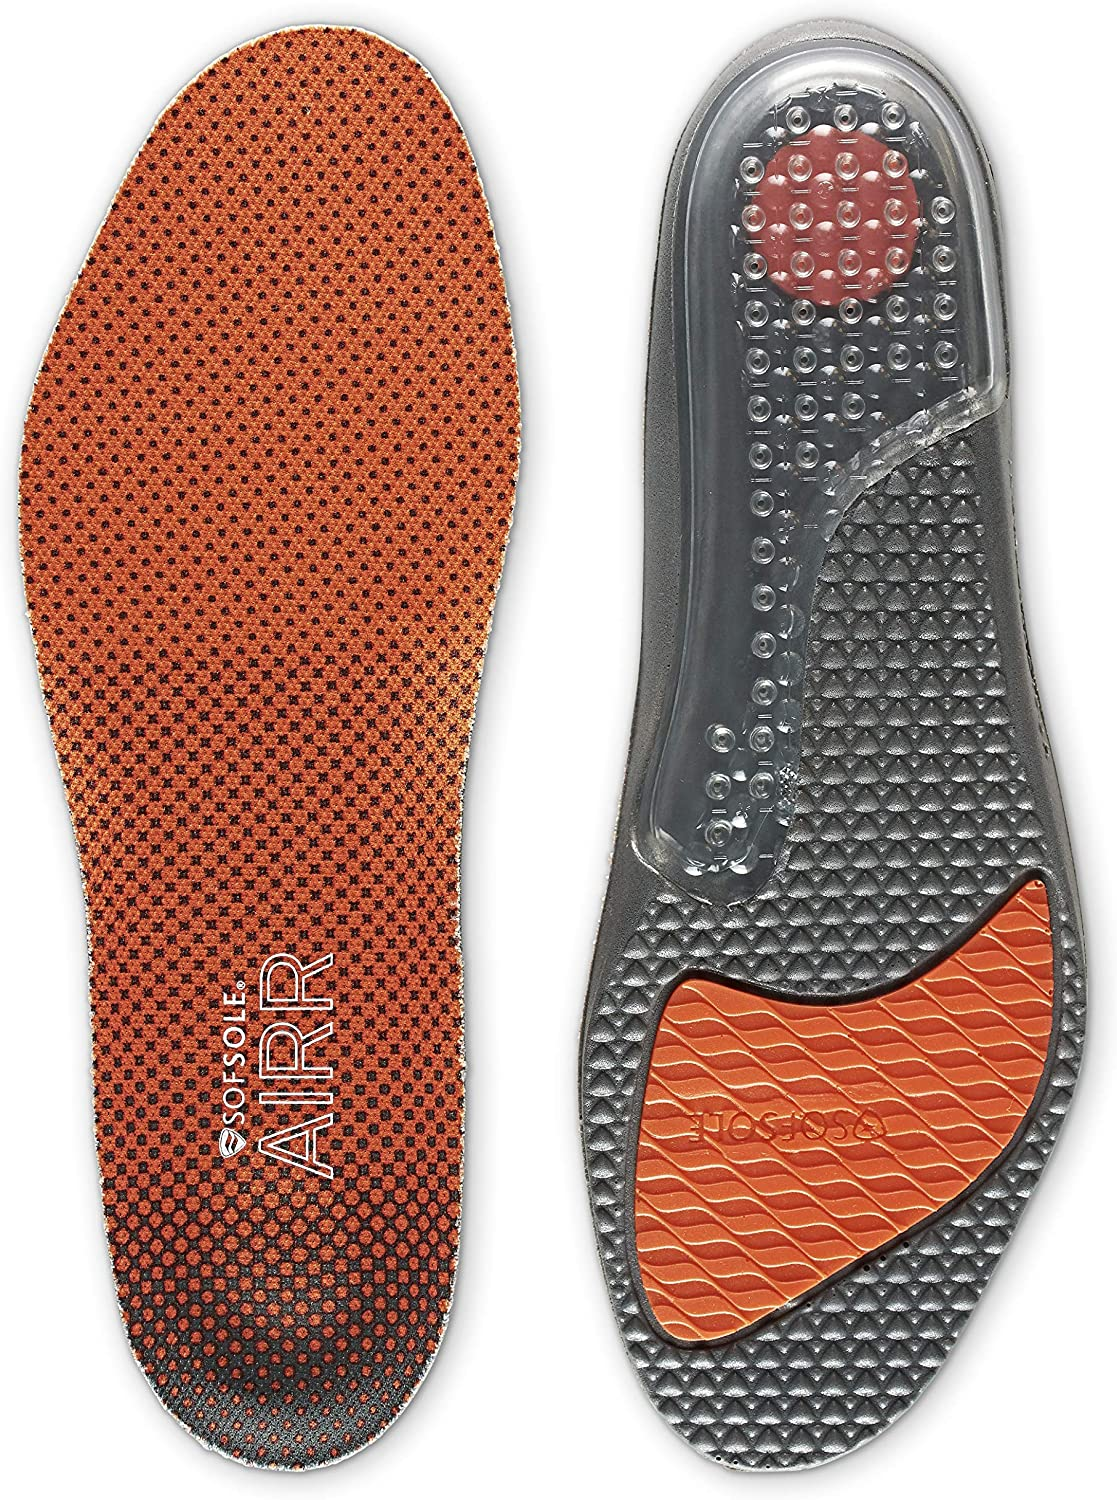 Sof Sole Insoles Factory outlet Men's AIRR Ins Performance Full-Length Gel Minneapolis Mall Shoe